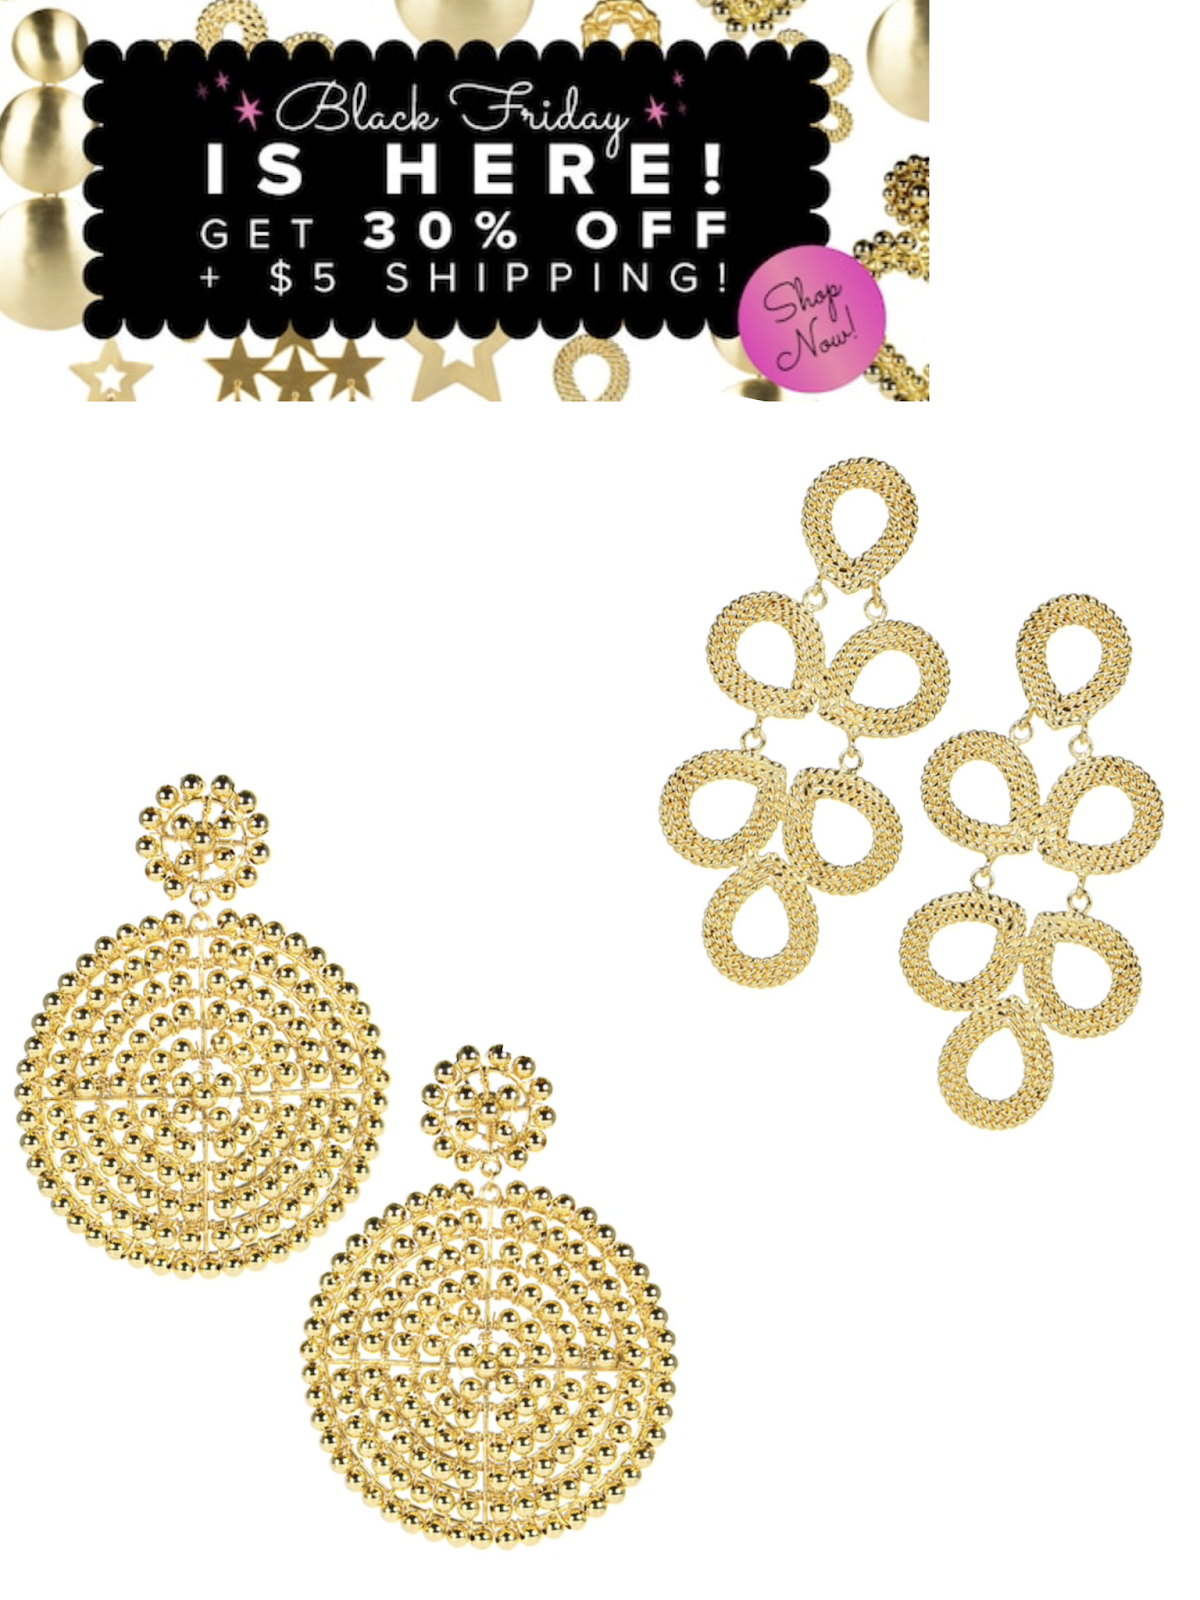 Black Friday Sales and Cyber Monday Deals 2019 | Lisi Lerch Earrings Cyber Monday Sale